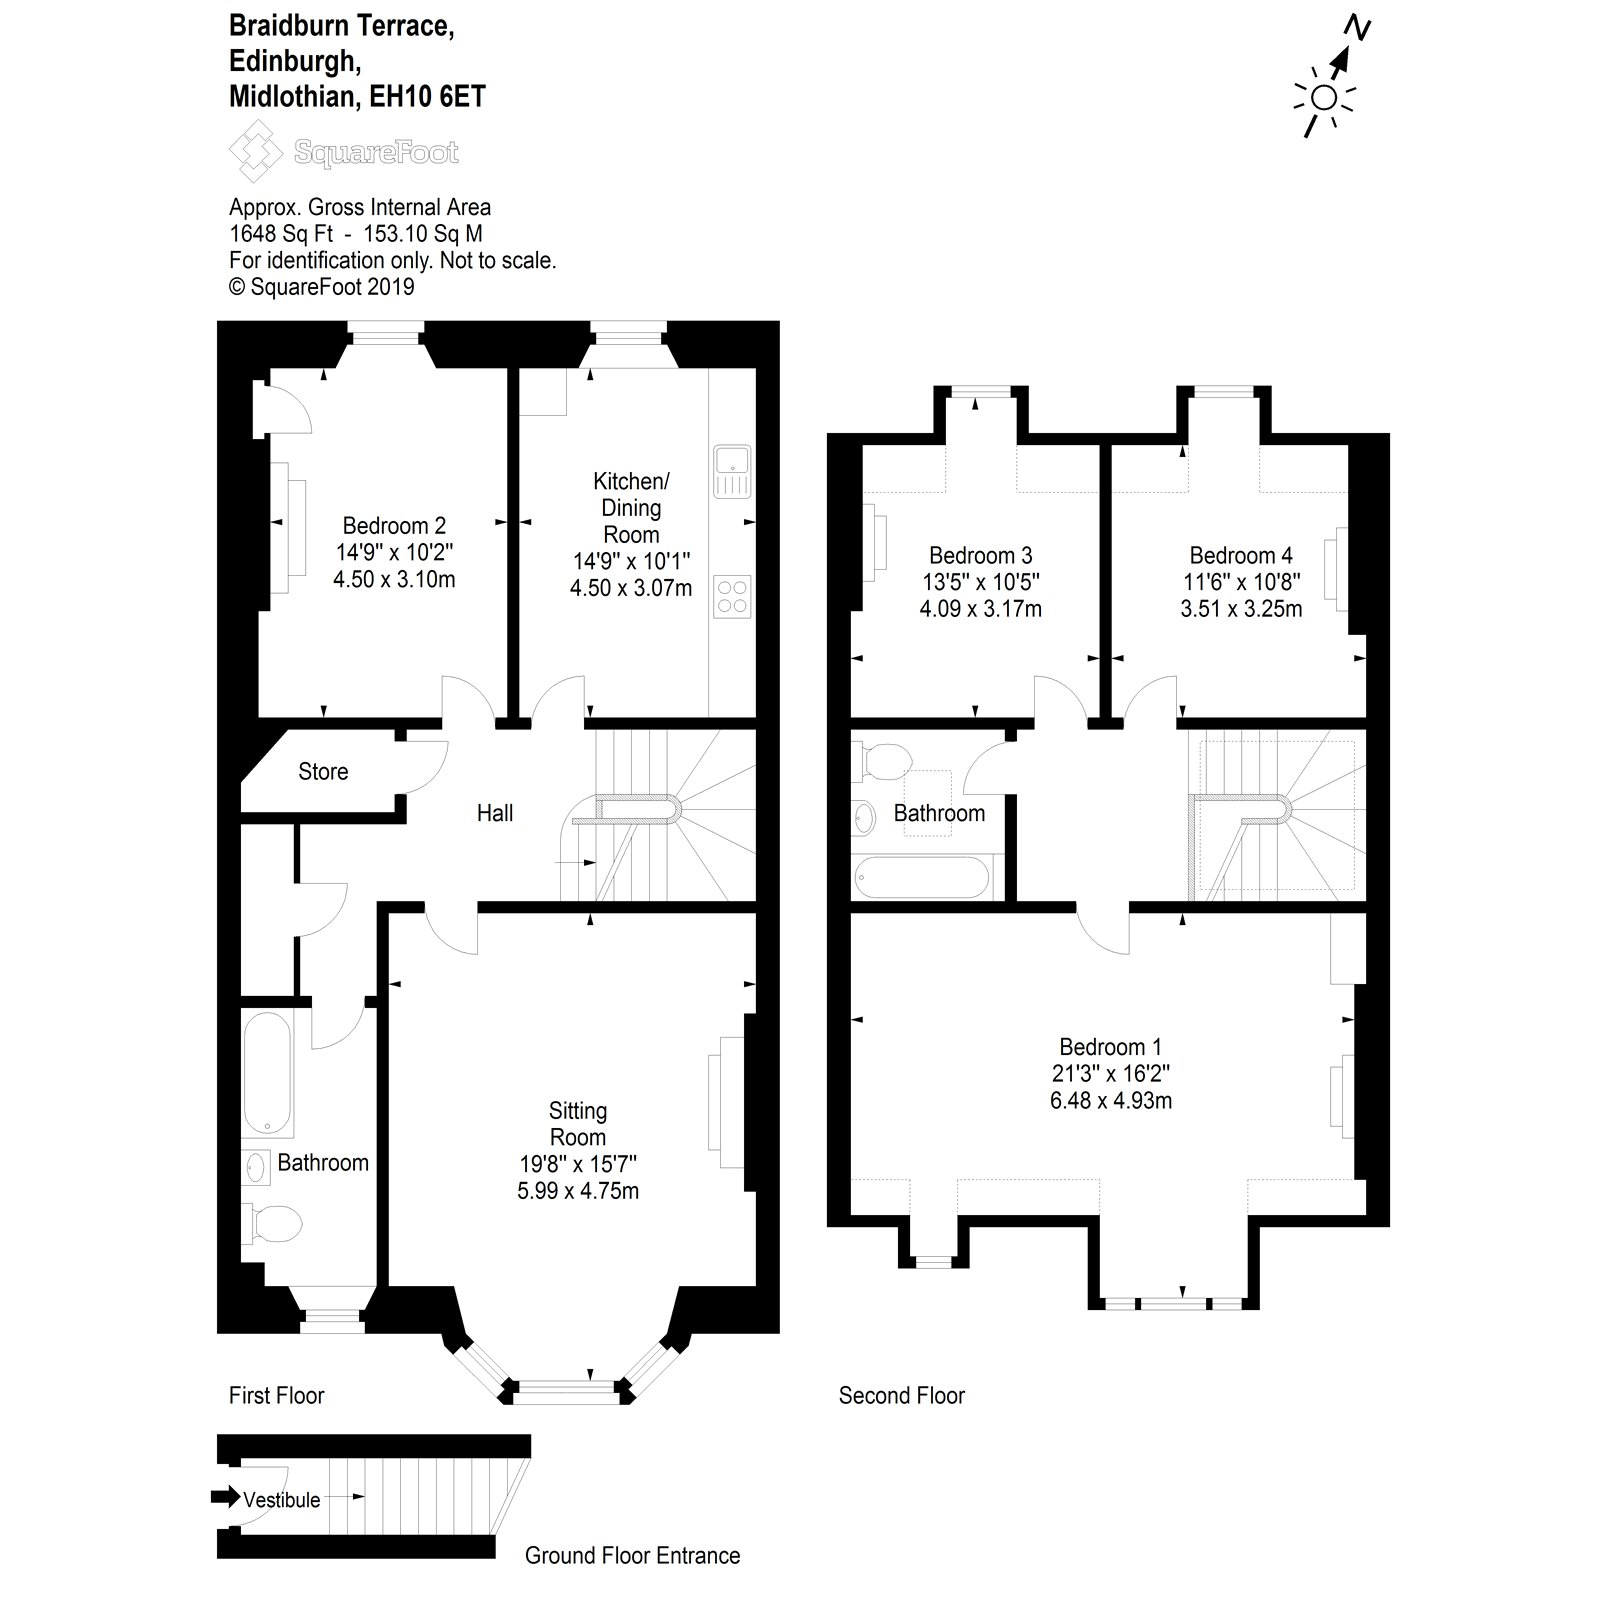 Floorplans for Braidburn Terrace, Edinburgh, EH10